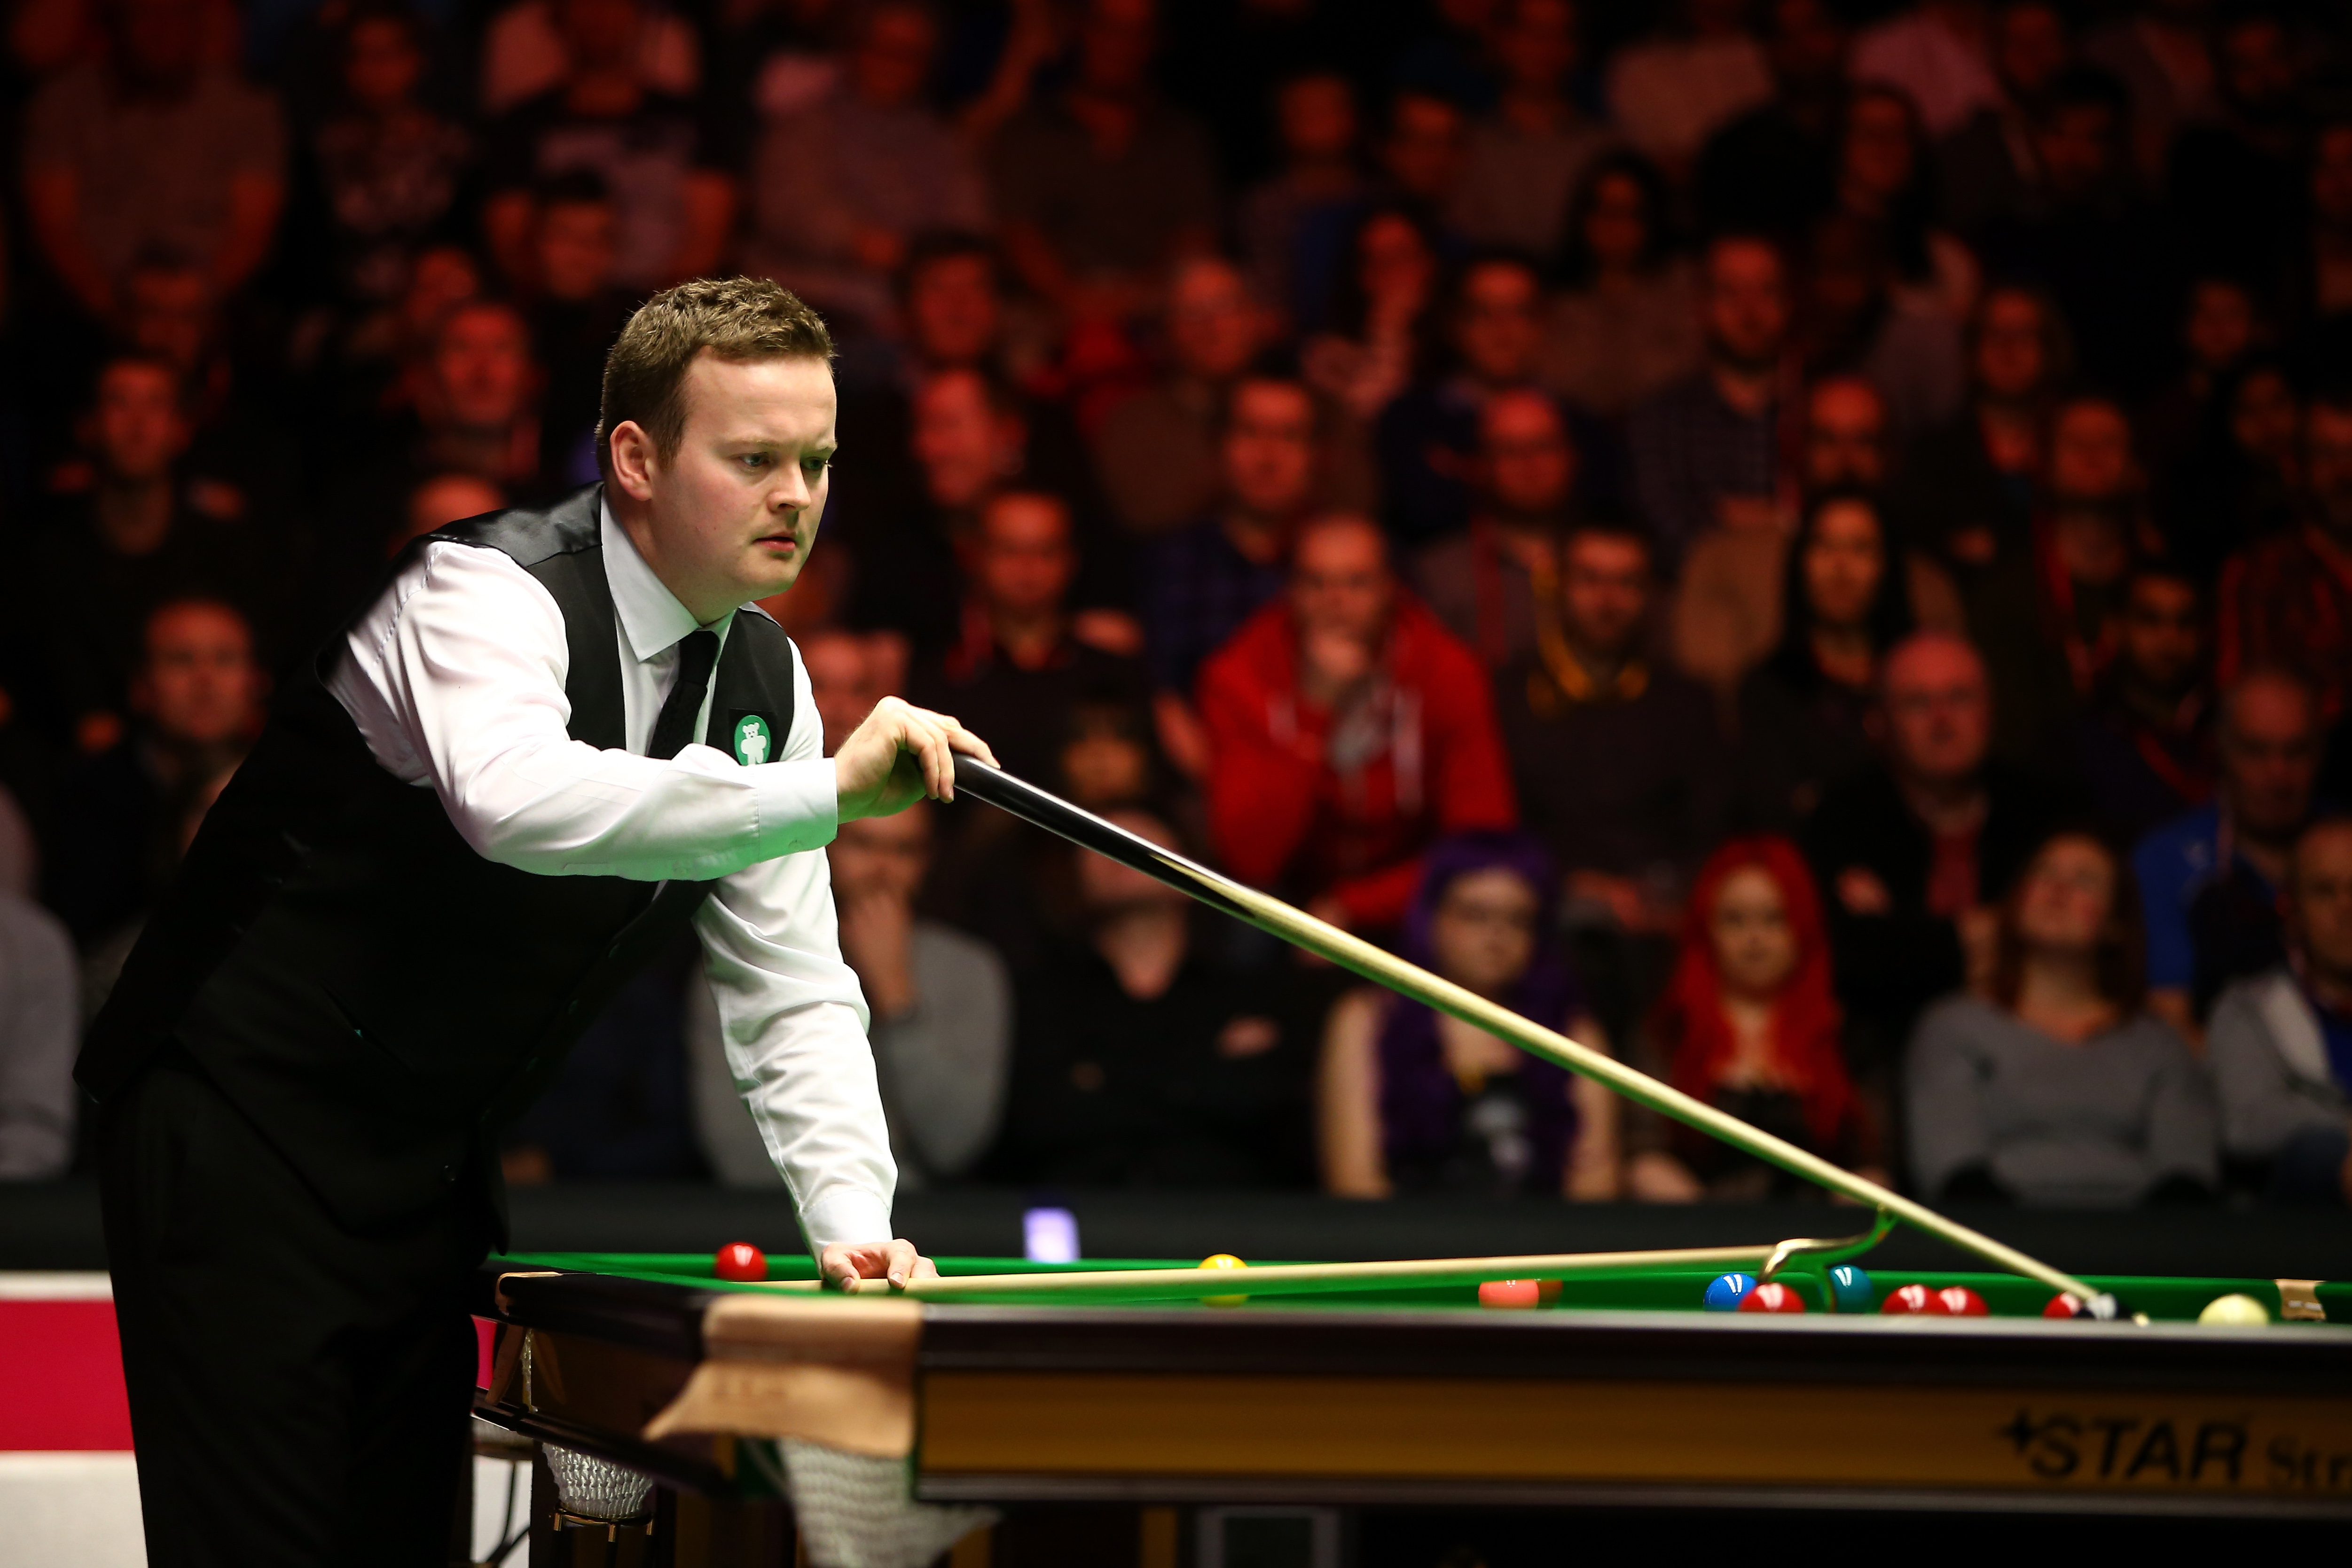 The 2005 world champion is rediscovering some of his best form. He completed a 6-5 win over Mark Selby at the Masters.